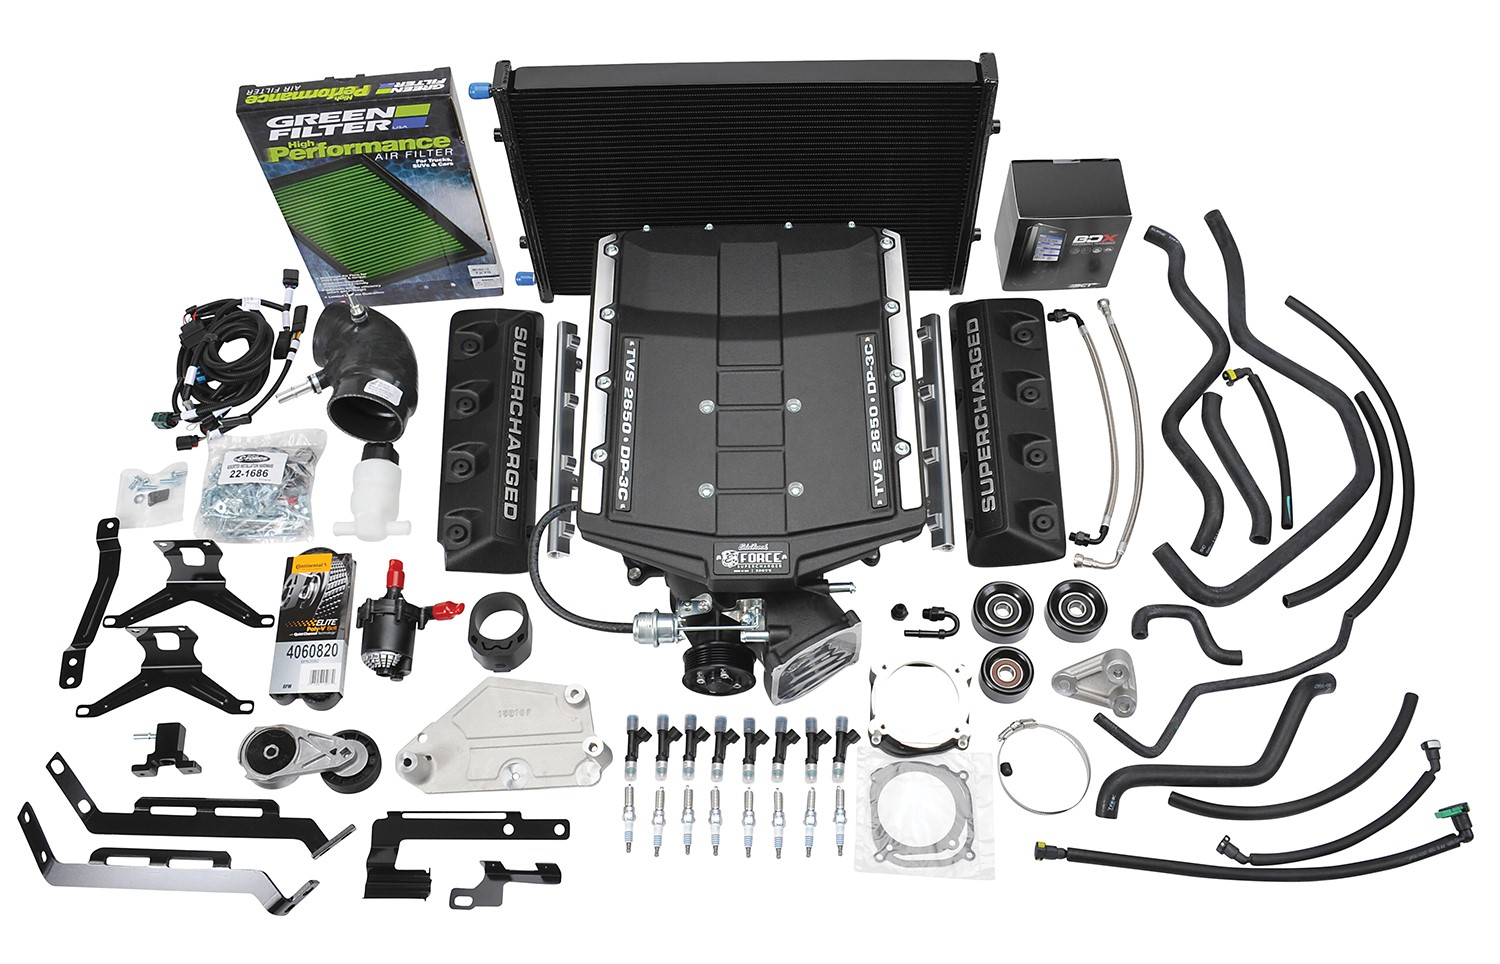 2015-2017 Ford Mustang GT 5.0L V8 Edelbrock Stage 1 E-Force Supercharger Kit w/Tuner